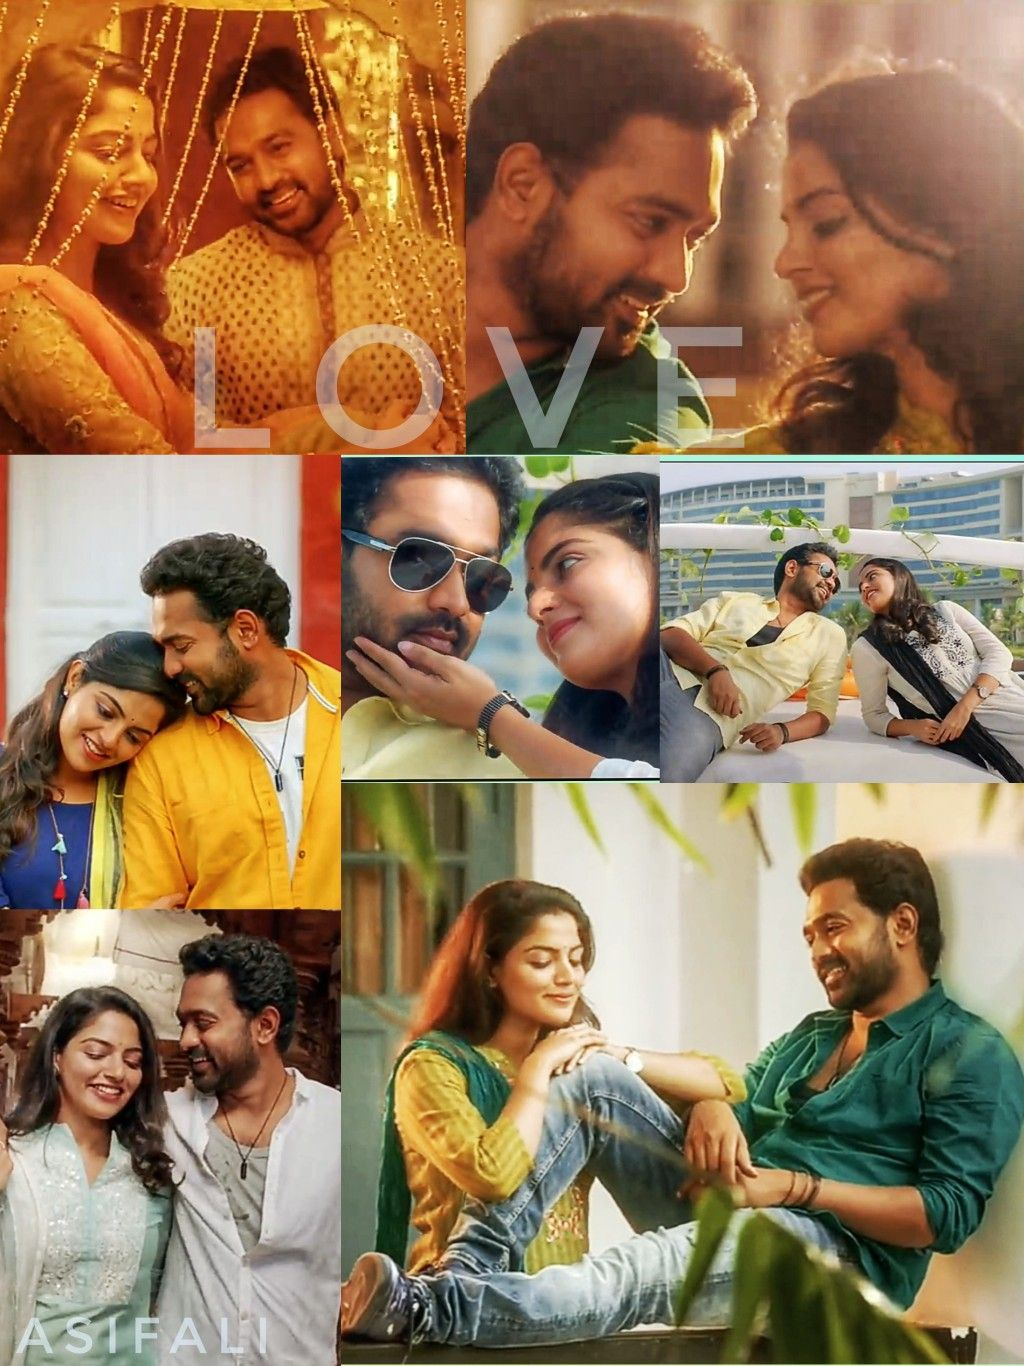 Pin by Melbin Mathew on Asif Ali Movie posters, Movies